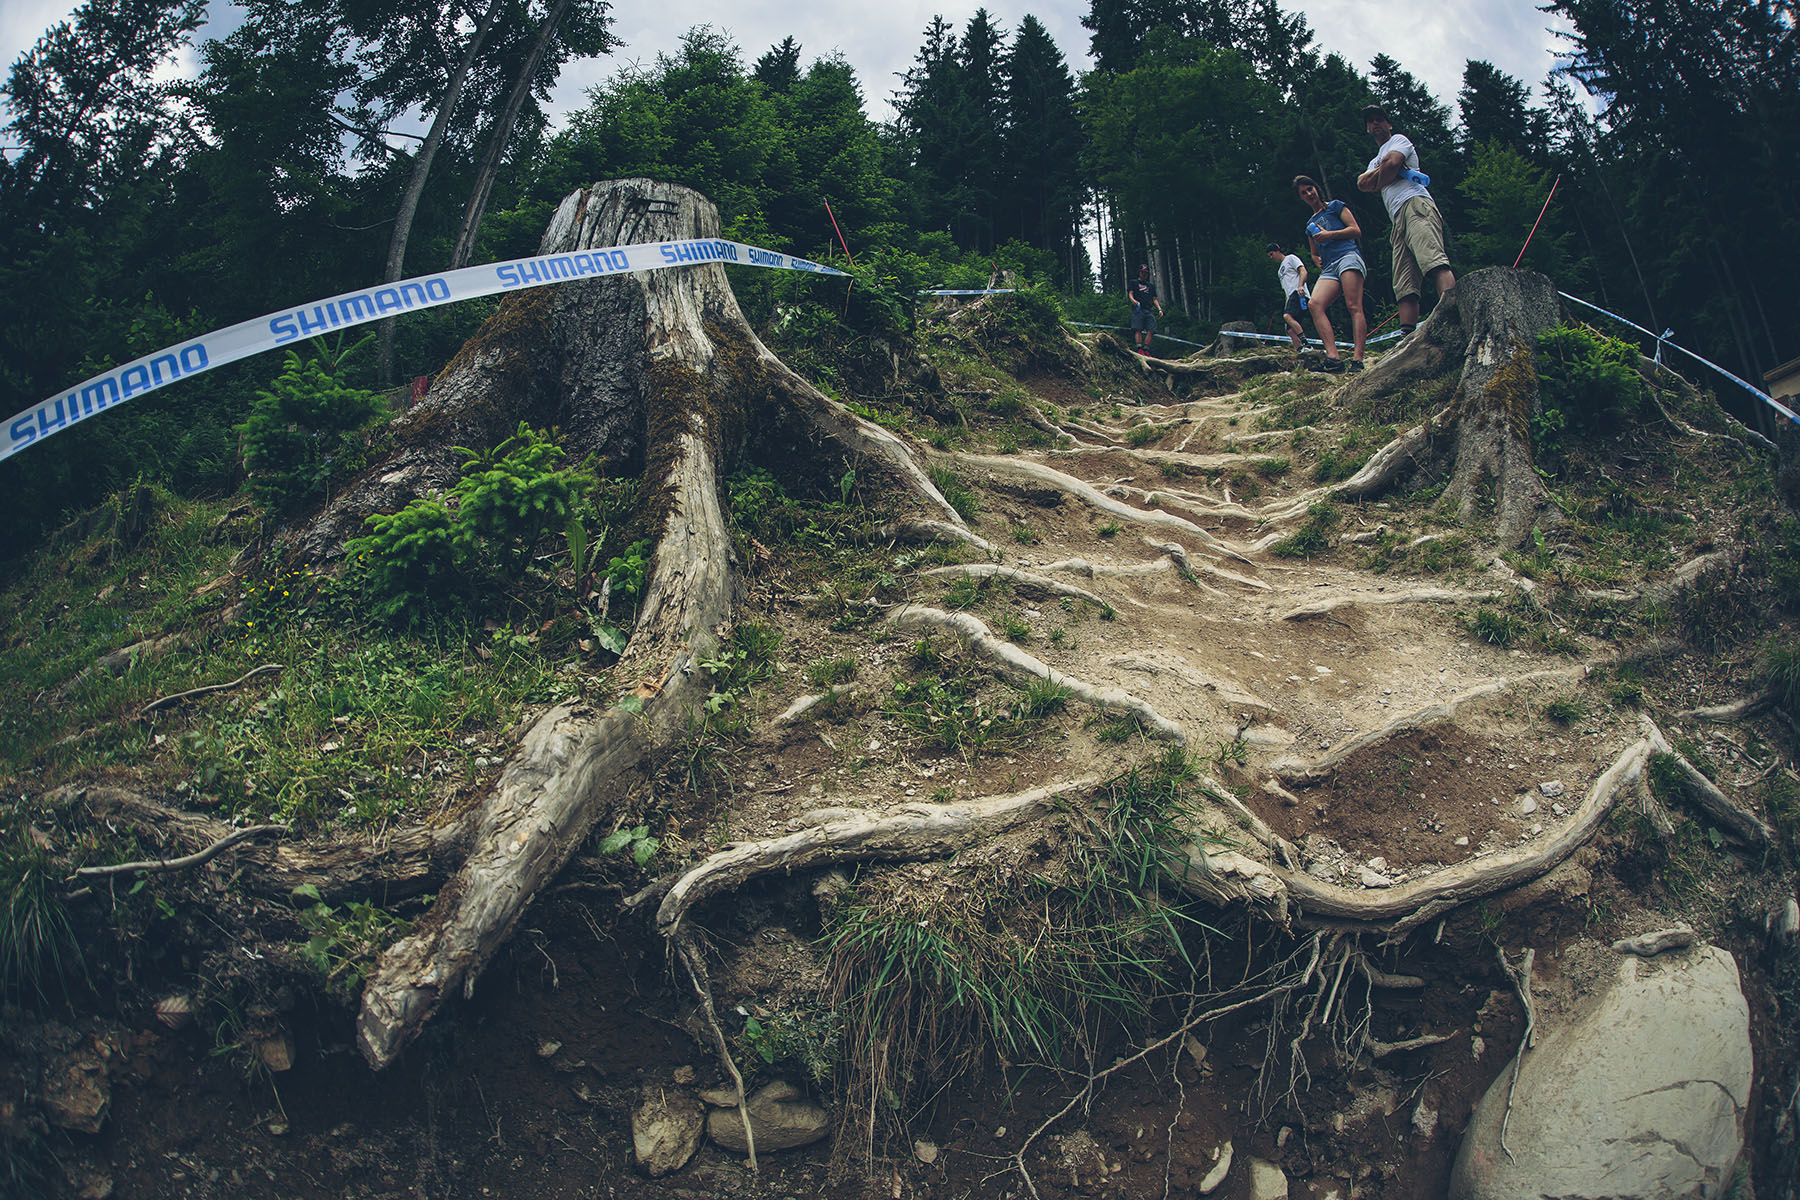 A real mix of features and overall feel to the track. The flat out top section mixed in with nibbly rock gardens leading into rattly roots makes it tickle all the skills. Good all rounder will do well at this track.